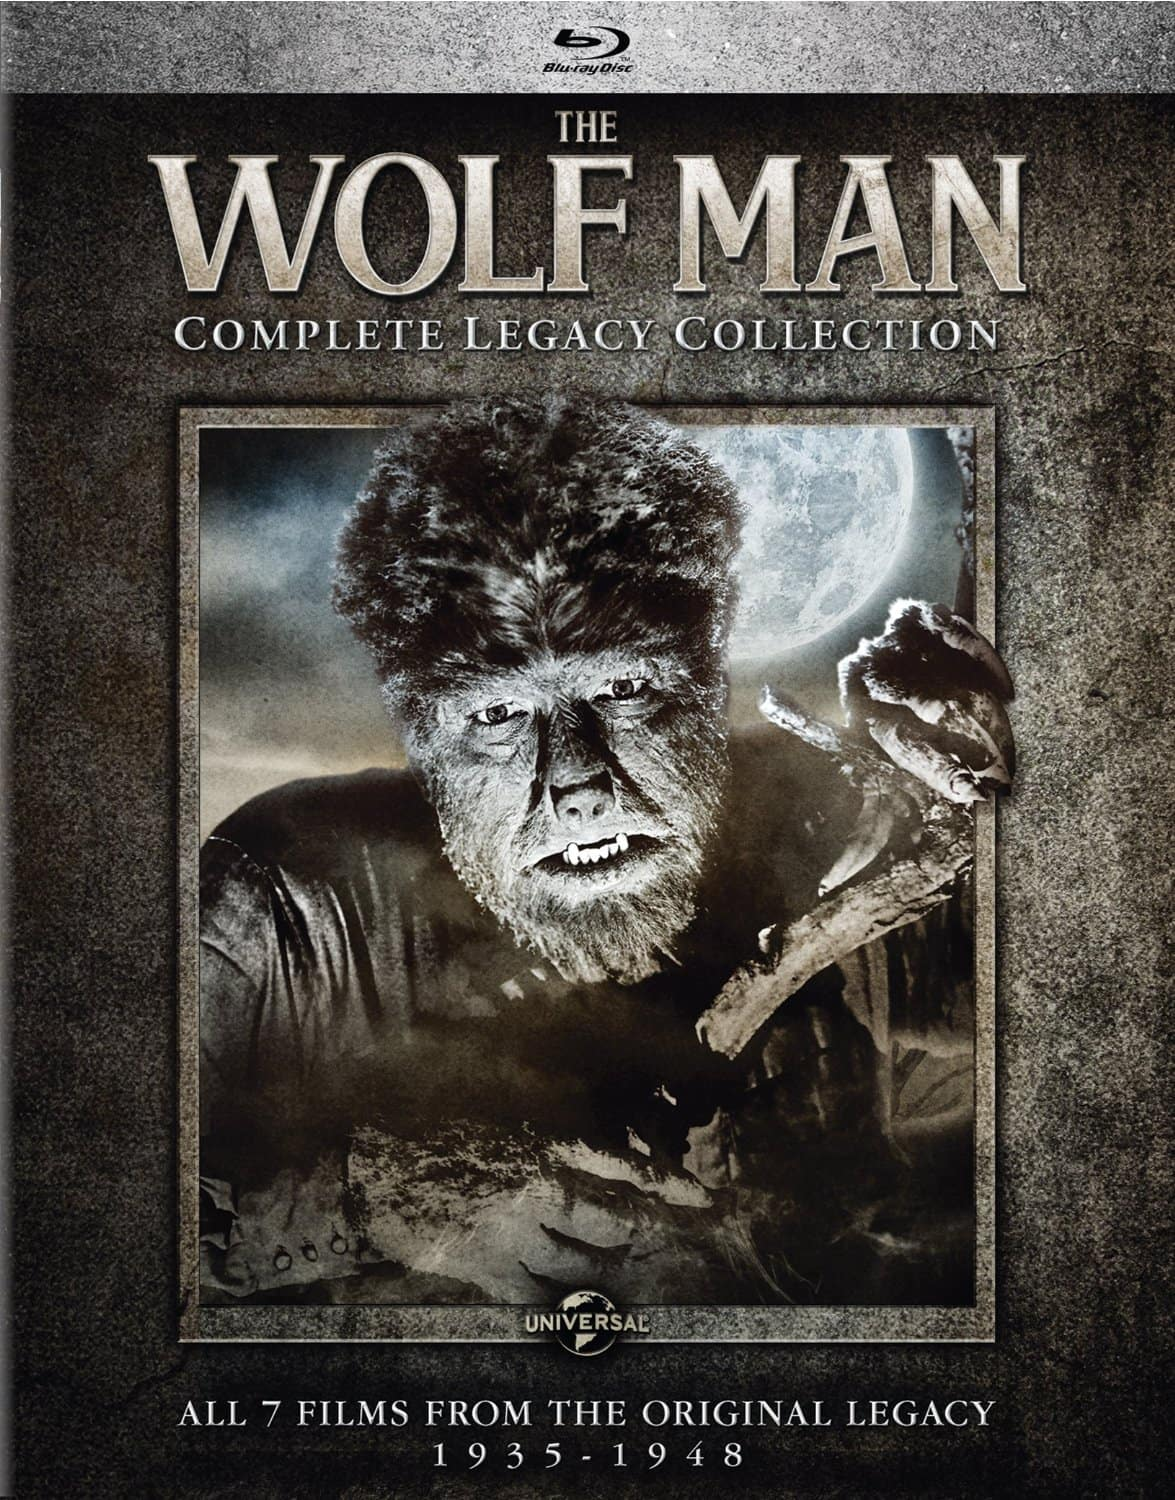 Wolf Man: Complete Legacy Collection Pre-Order (Blu-ray) $14.99 + $3.99 S/H @ Best Buy